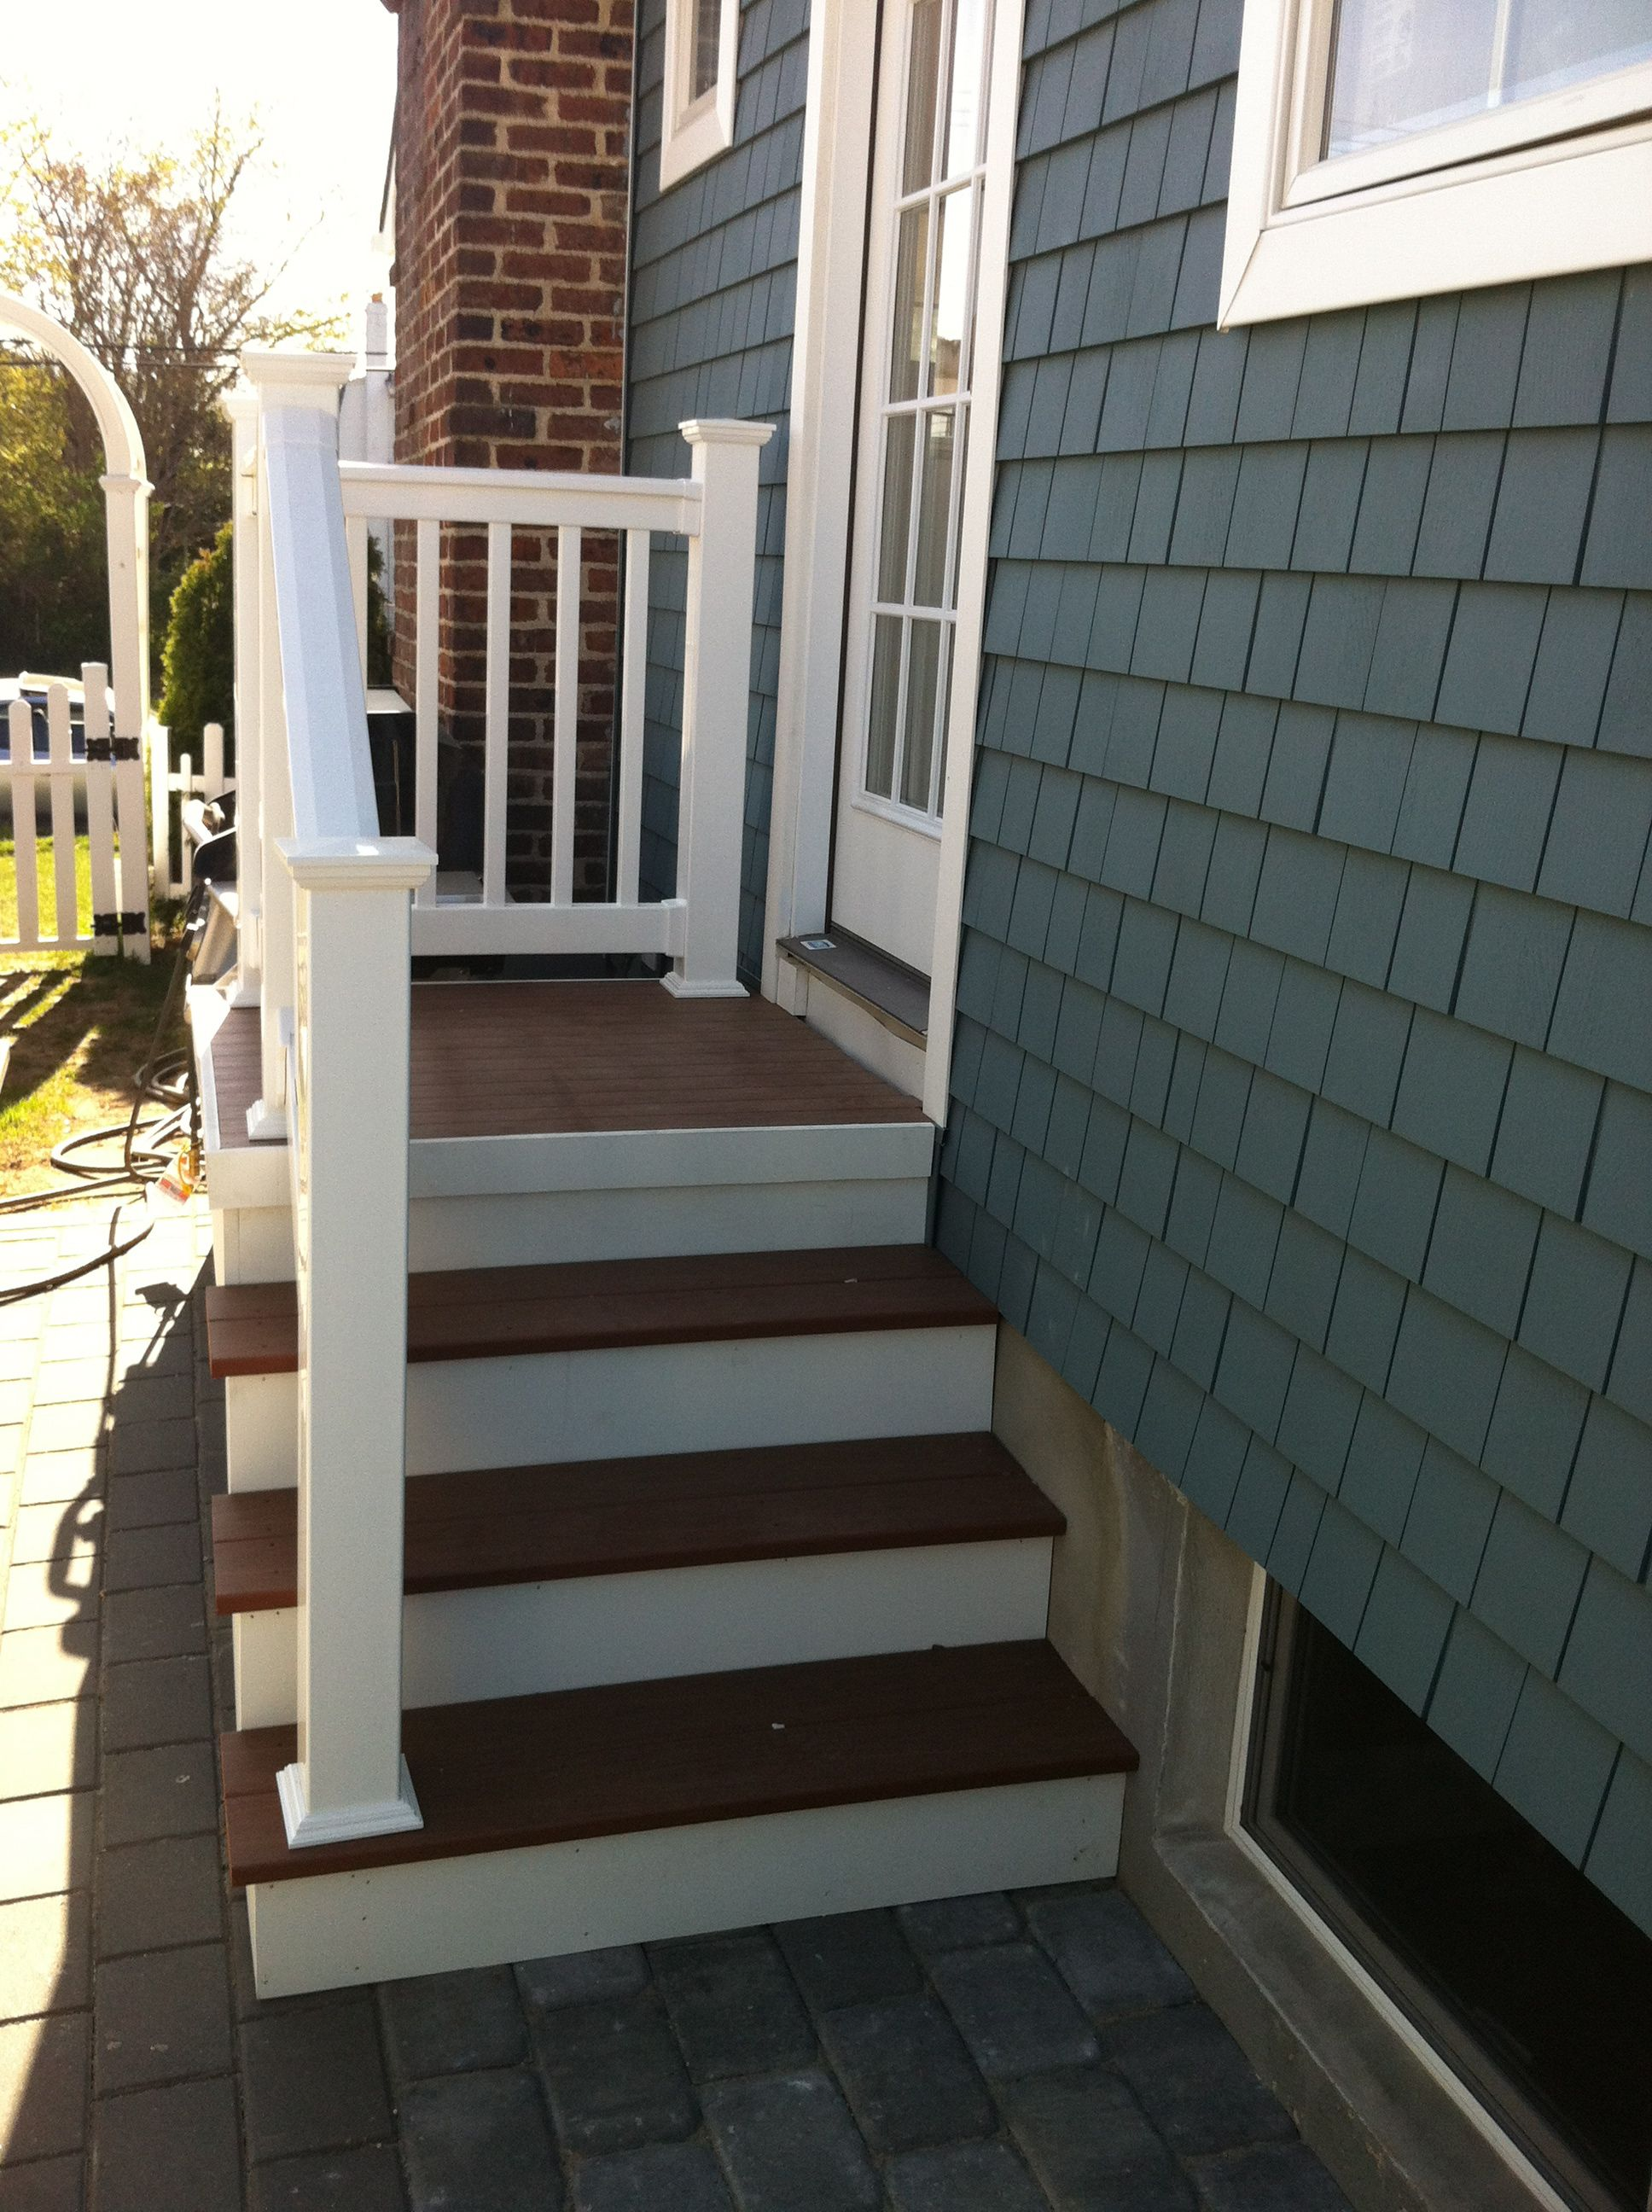 Outdoor Steps With Railing Side Entrance Backdoor Backyard Nj | Patio With Stairs From House | Residential | Curved Paver | Main Entrance Stamped Concrete Front | Walkout Basement | Decorative